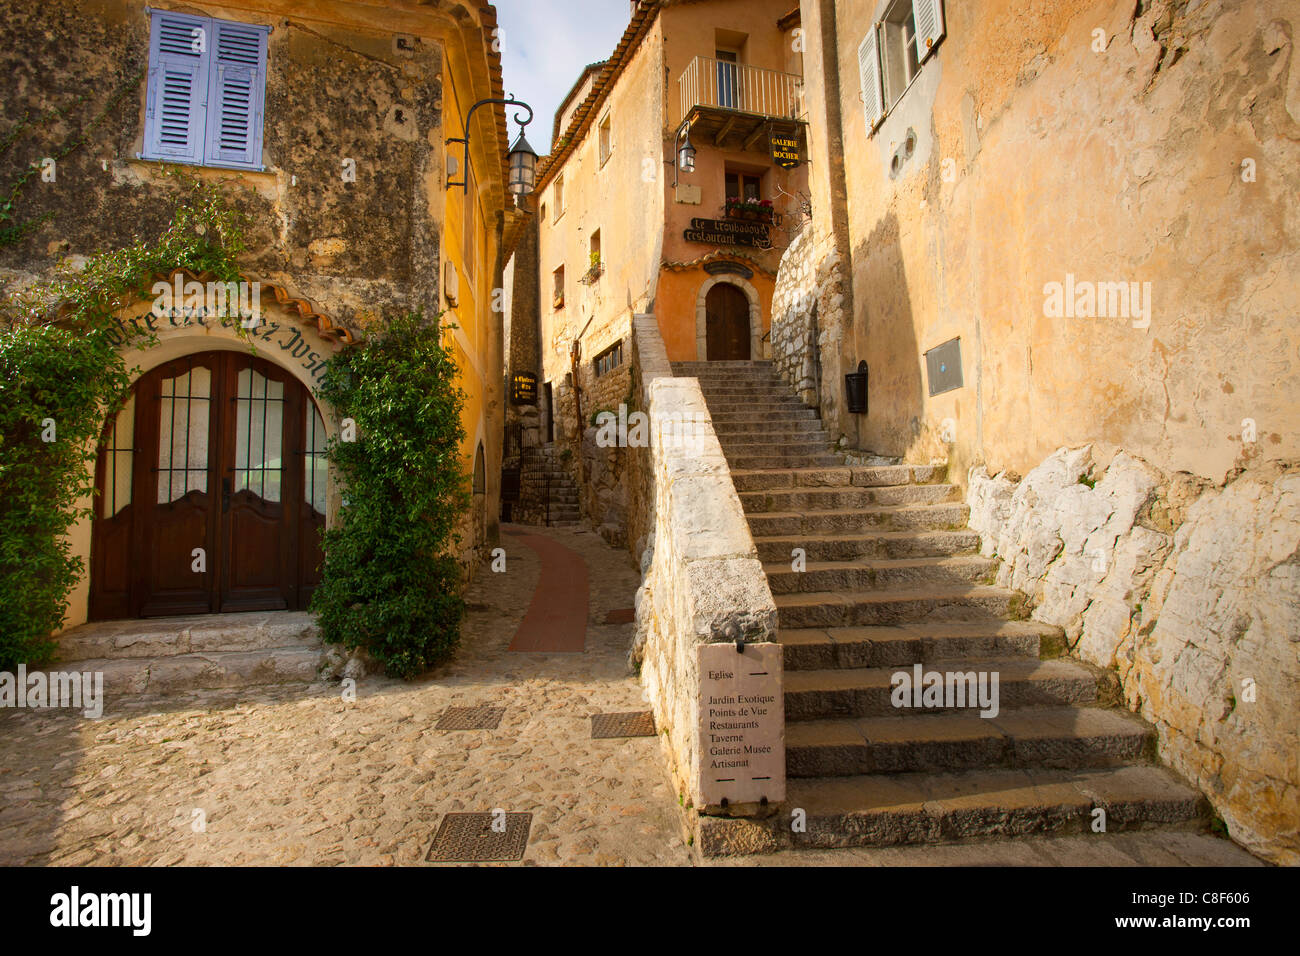 Eze, France, Europe, Côte d'Azur, Provence, Alpes-Maritimes, village, houses, homes, lane, stair - Stock Image